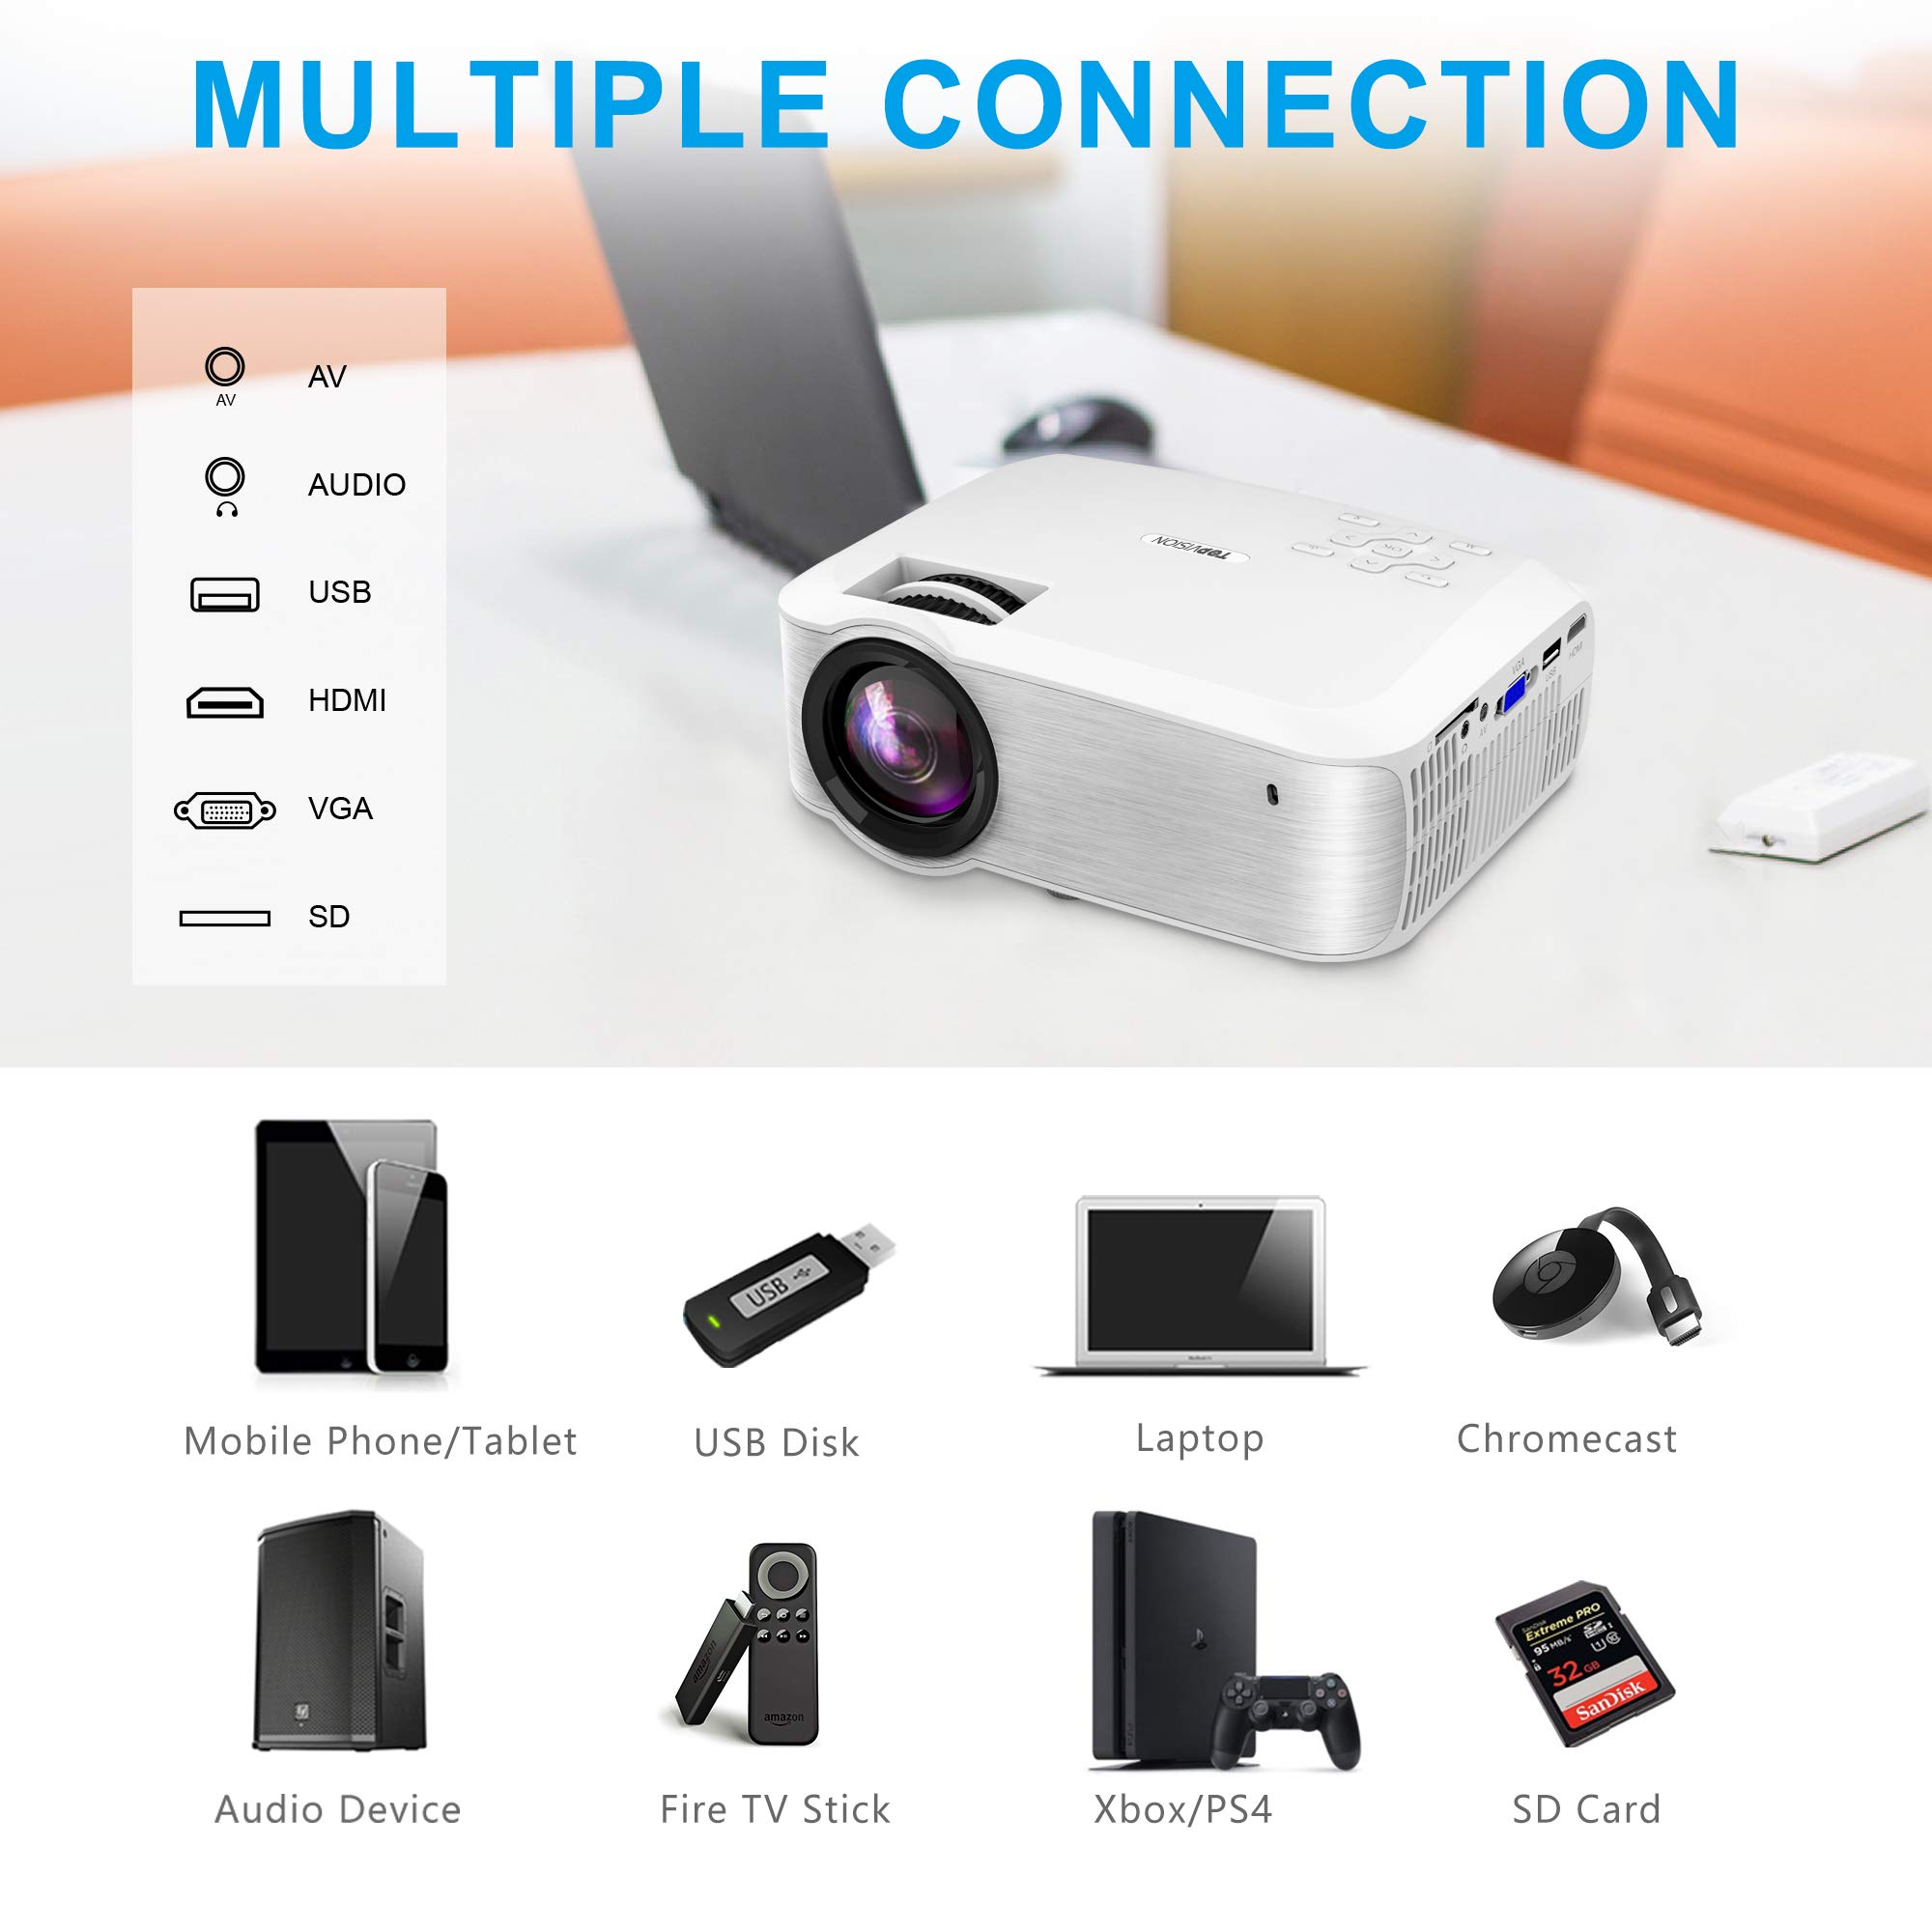 Video Projector, TOPVISION Full HD LED Projector with 3600Lux 2019 Upgraded, 60,000 Hrs Home Movie Projector 1080P Supported for Indoor/Outdoor, Compatible with Fire TV Stick, PS4, HDMI, VGA, AV, USB by TOPVISION (Image #2)